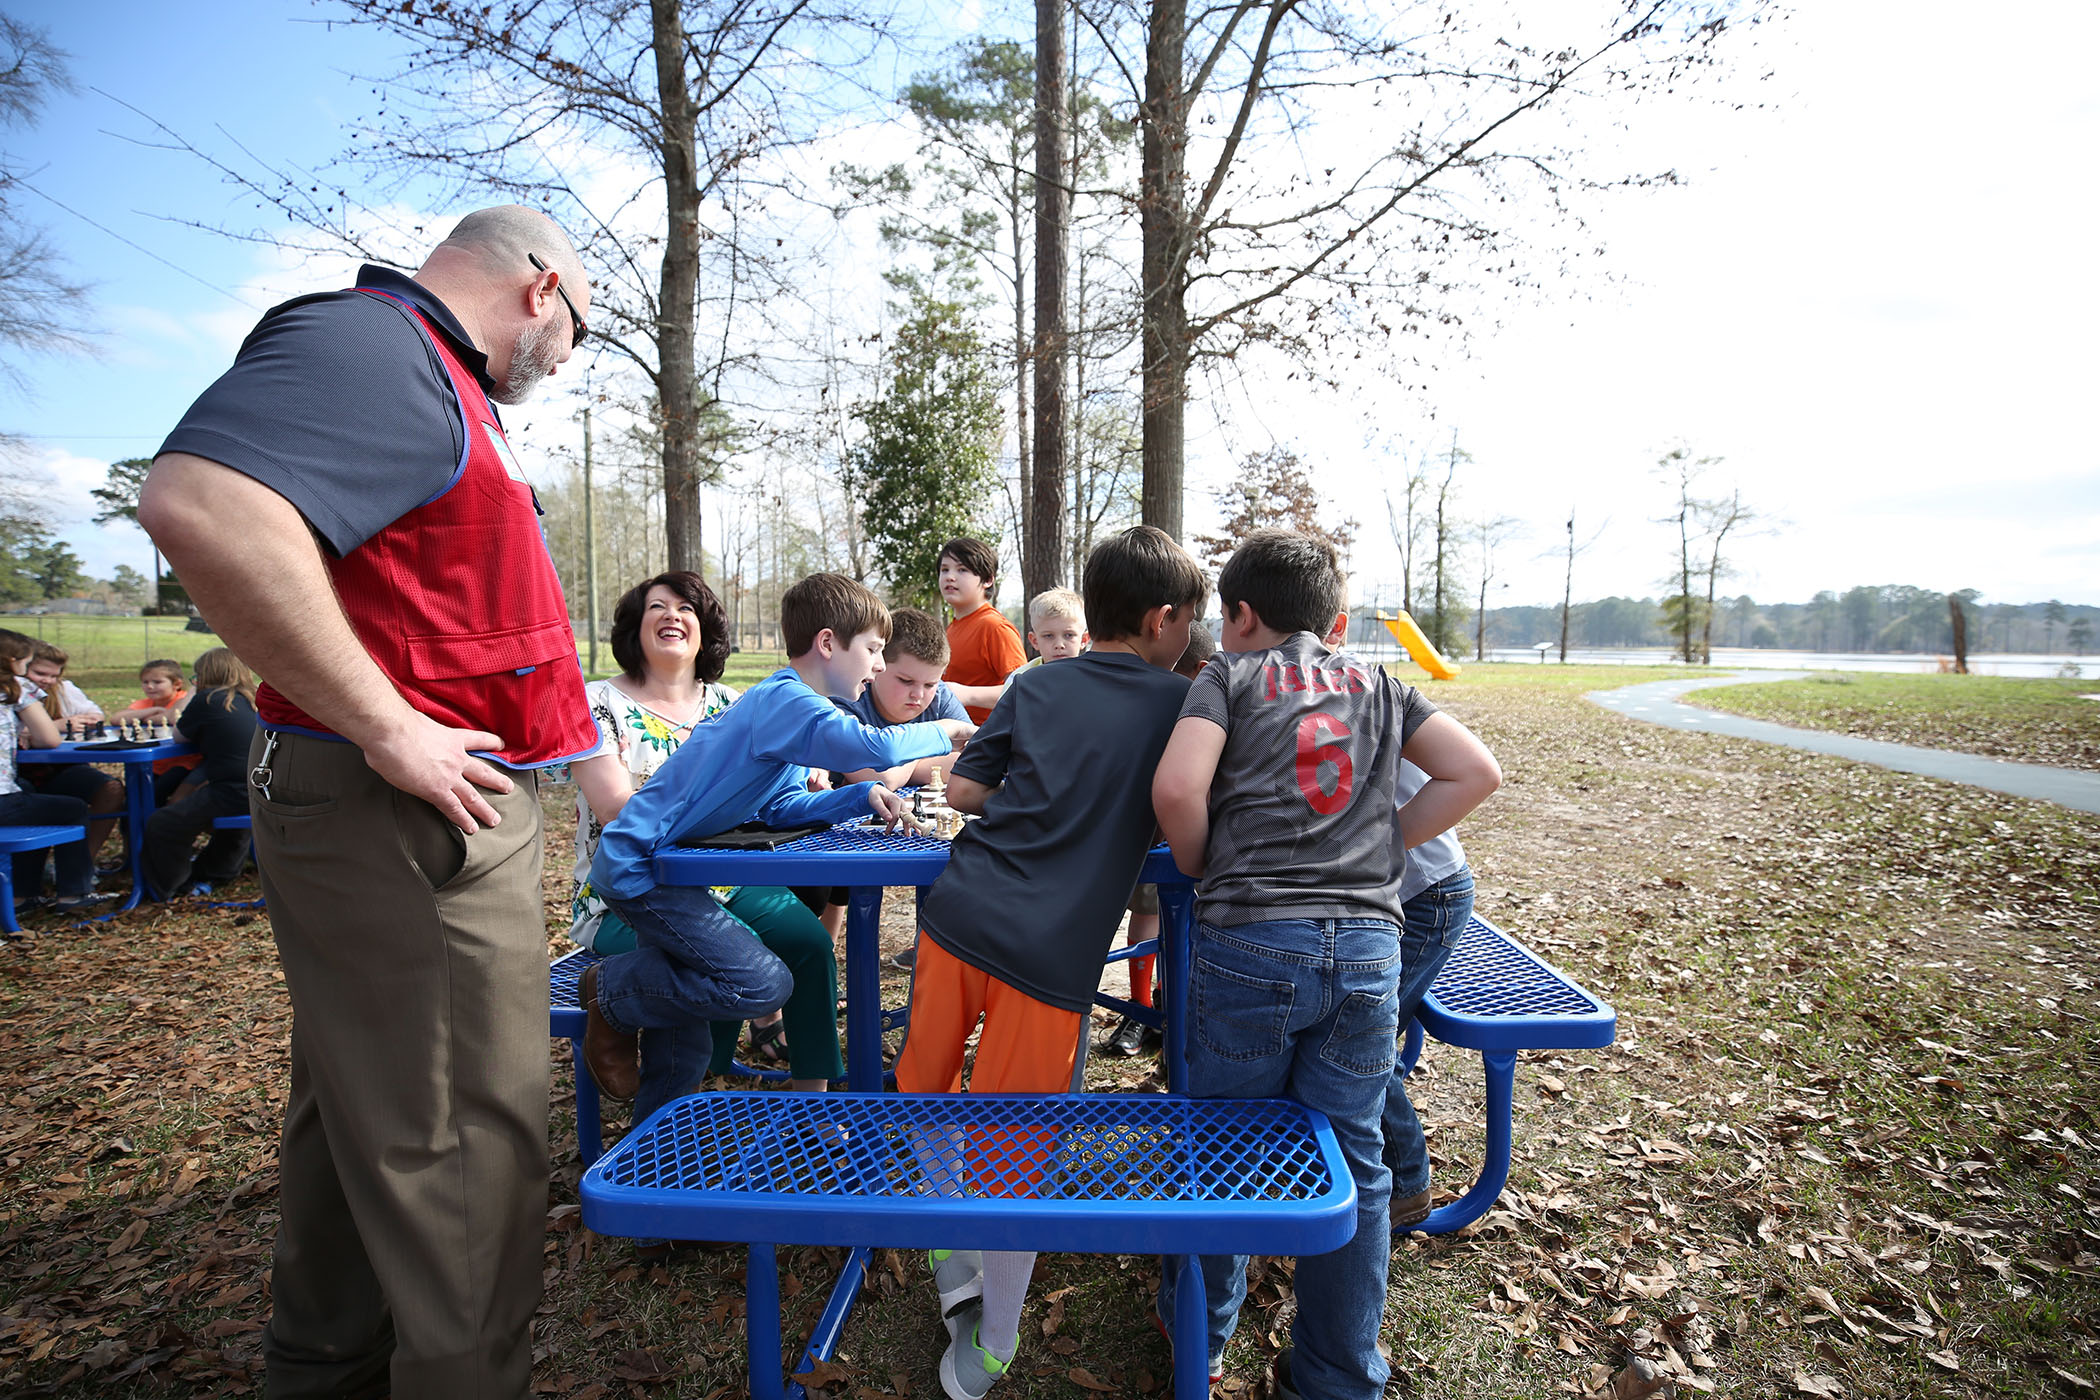 A Lowe's employee looks on as SWAT students play a game of chess.